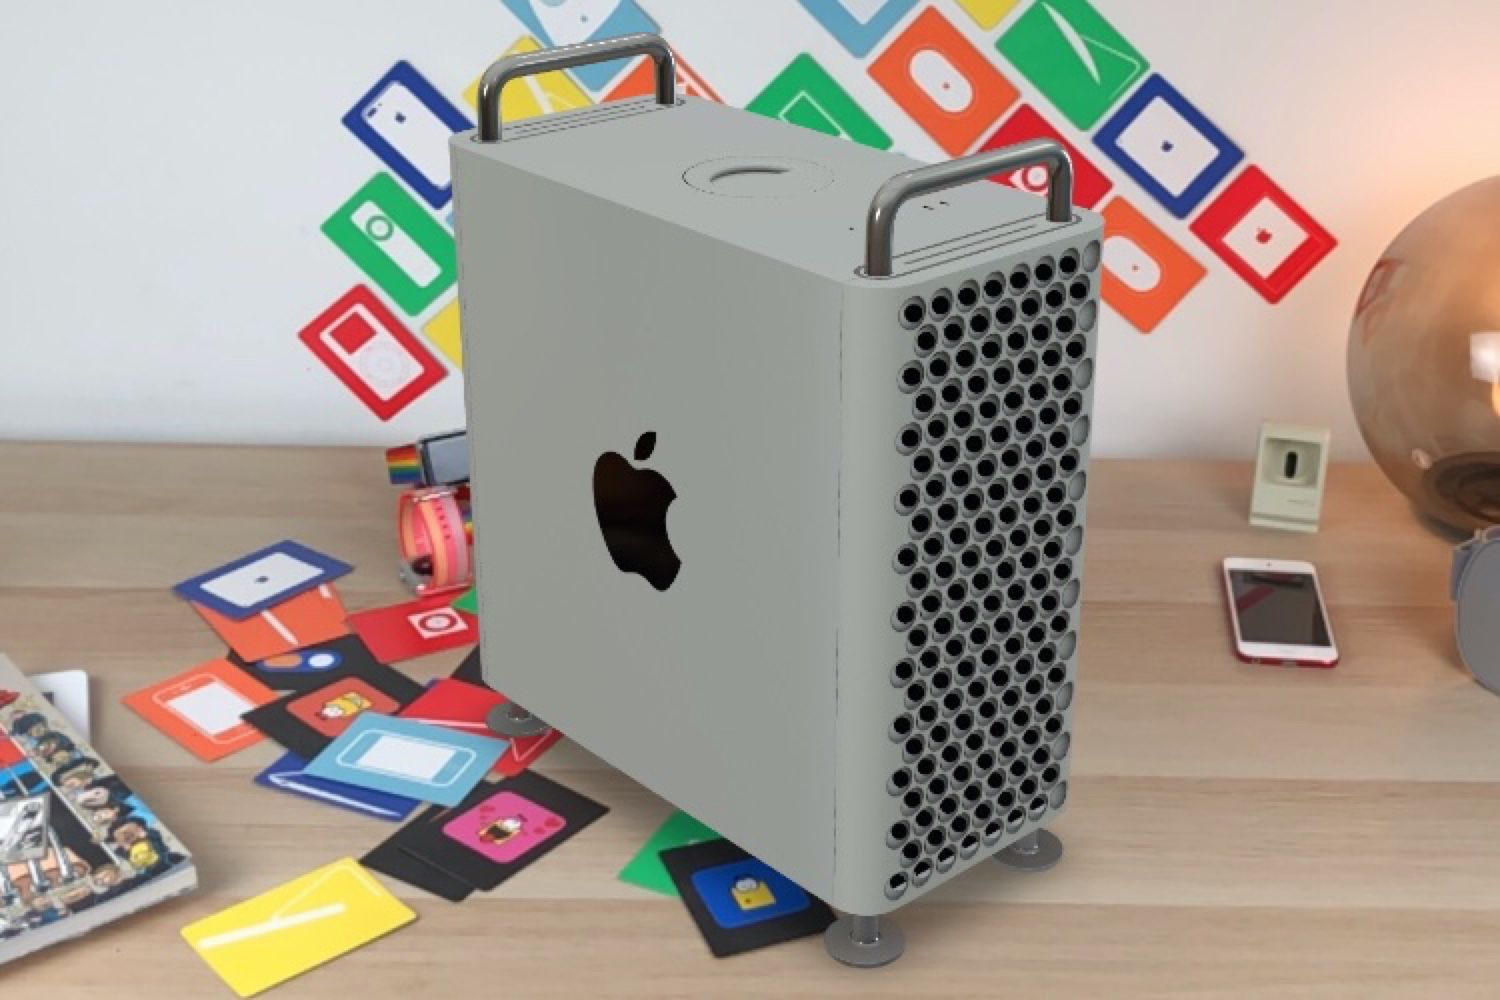 Apple lance les commandes du Mac Pro, à partir de 6 499 €